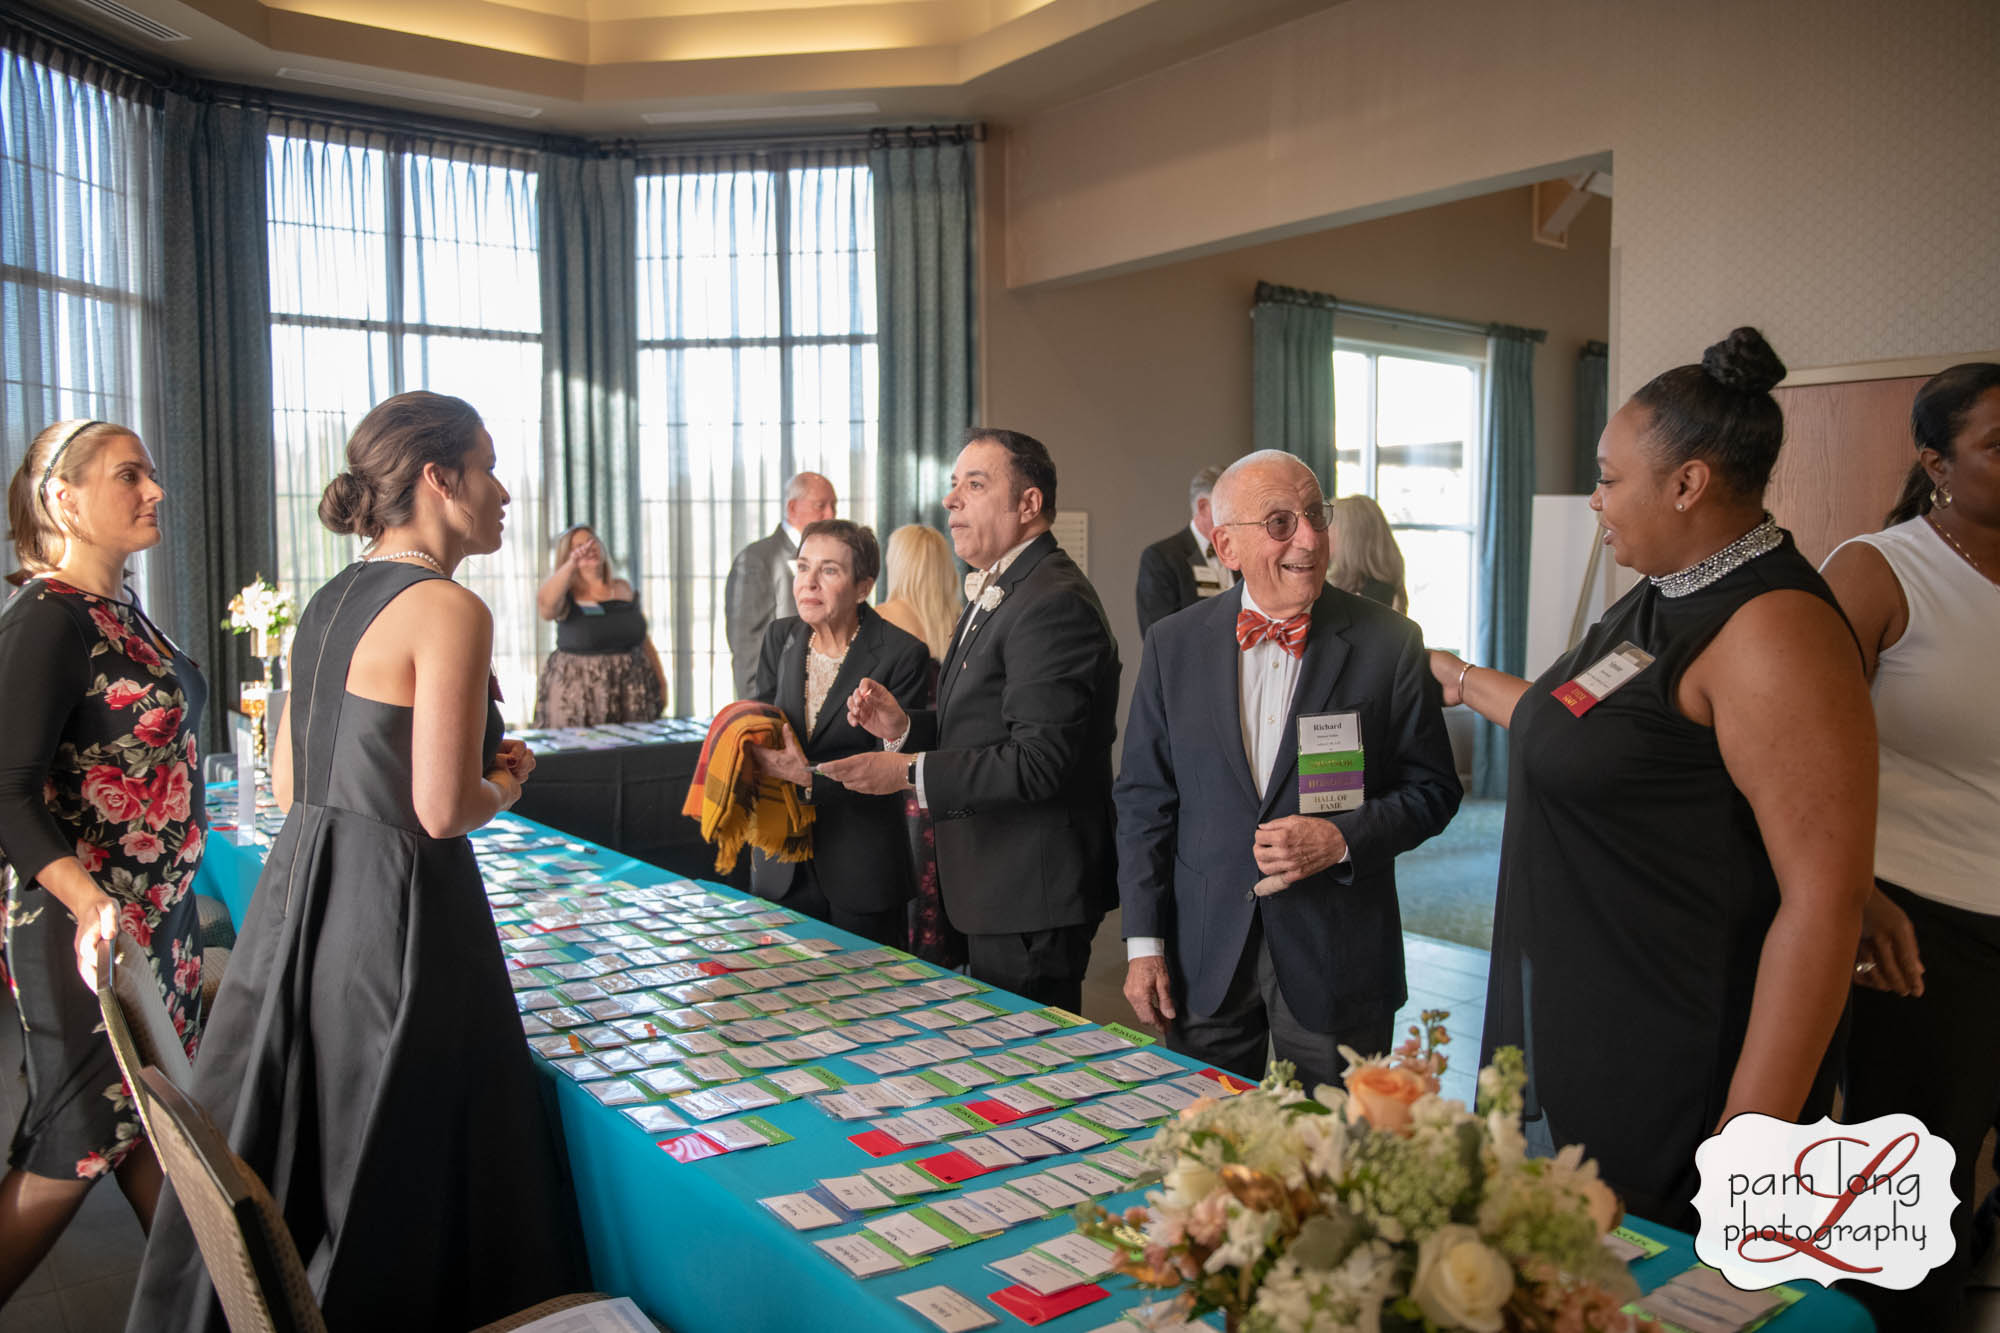 Pam-Long-Photography-HoCo-Chamber-20191005-8